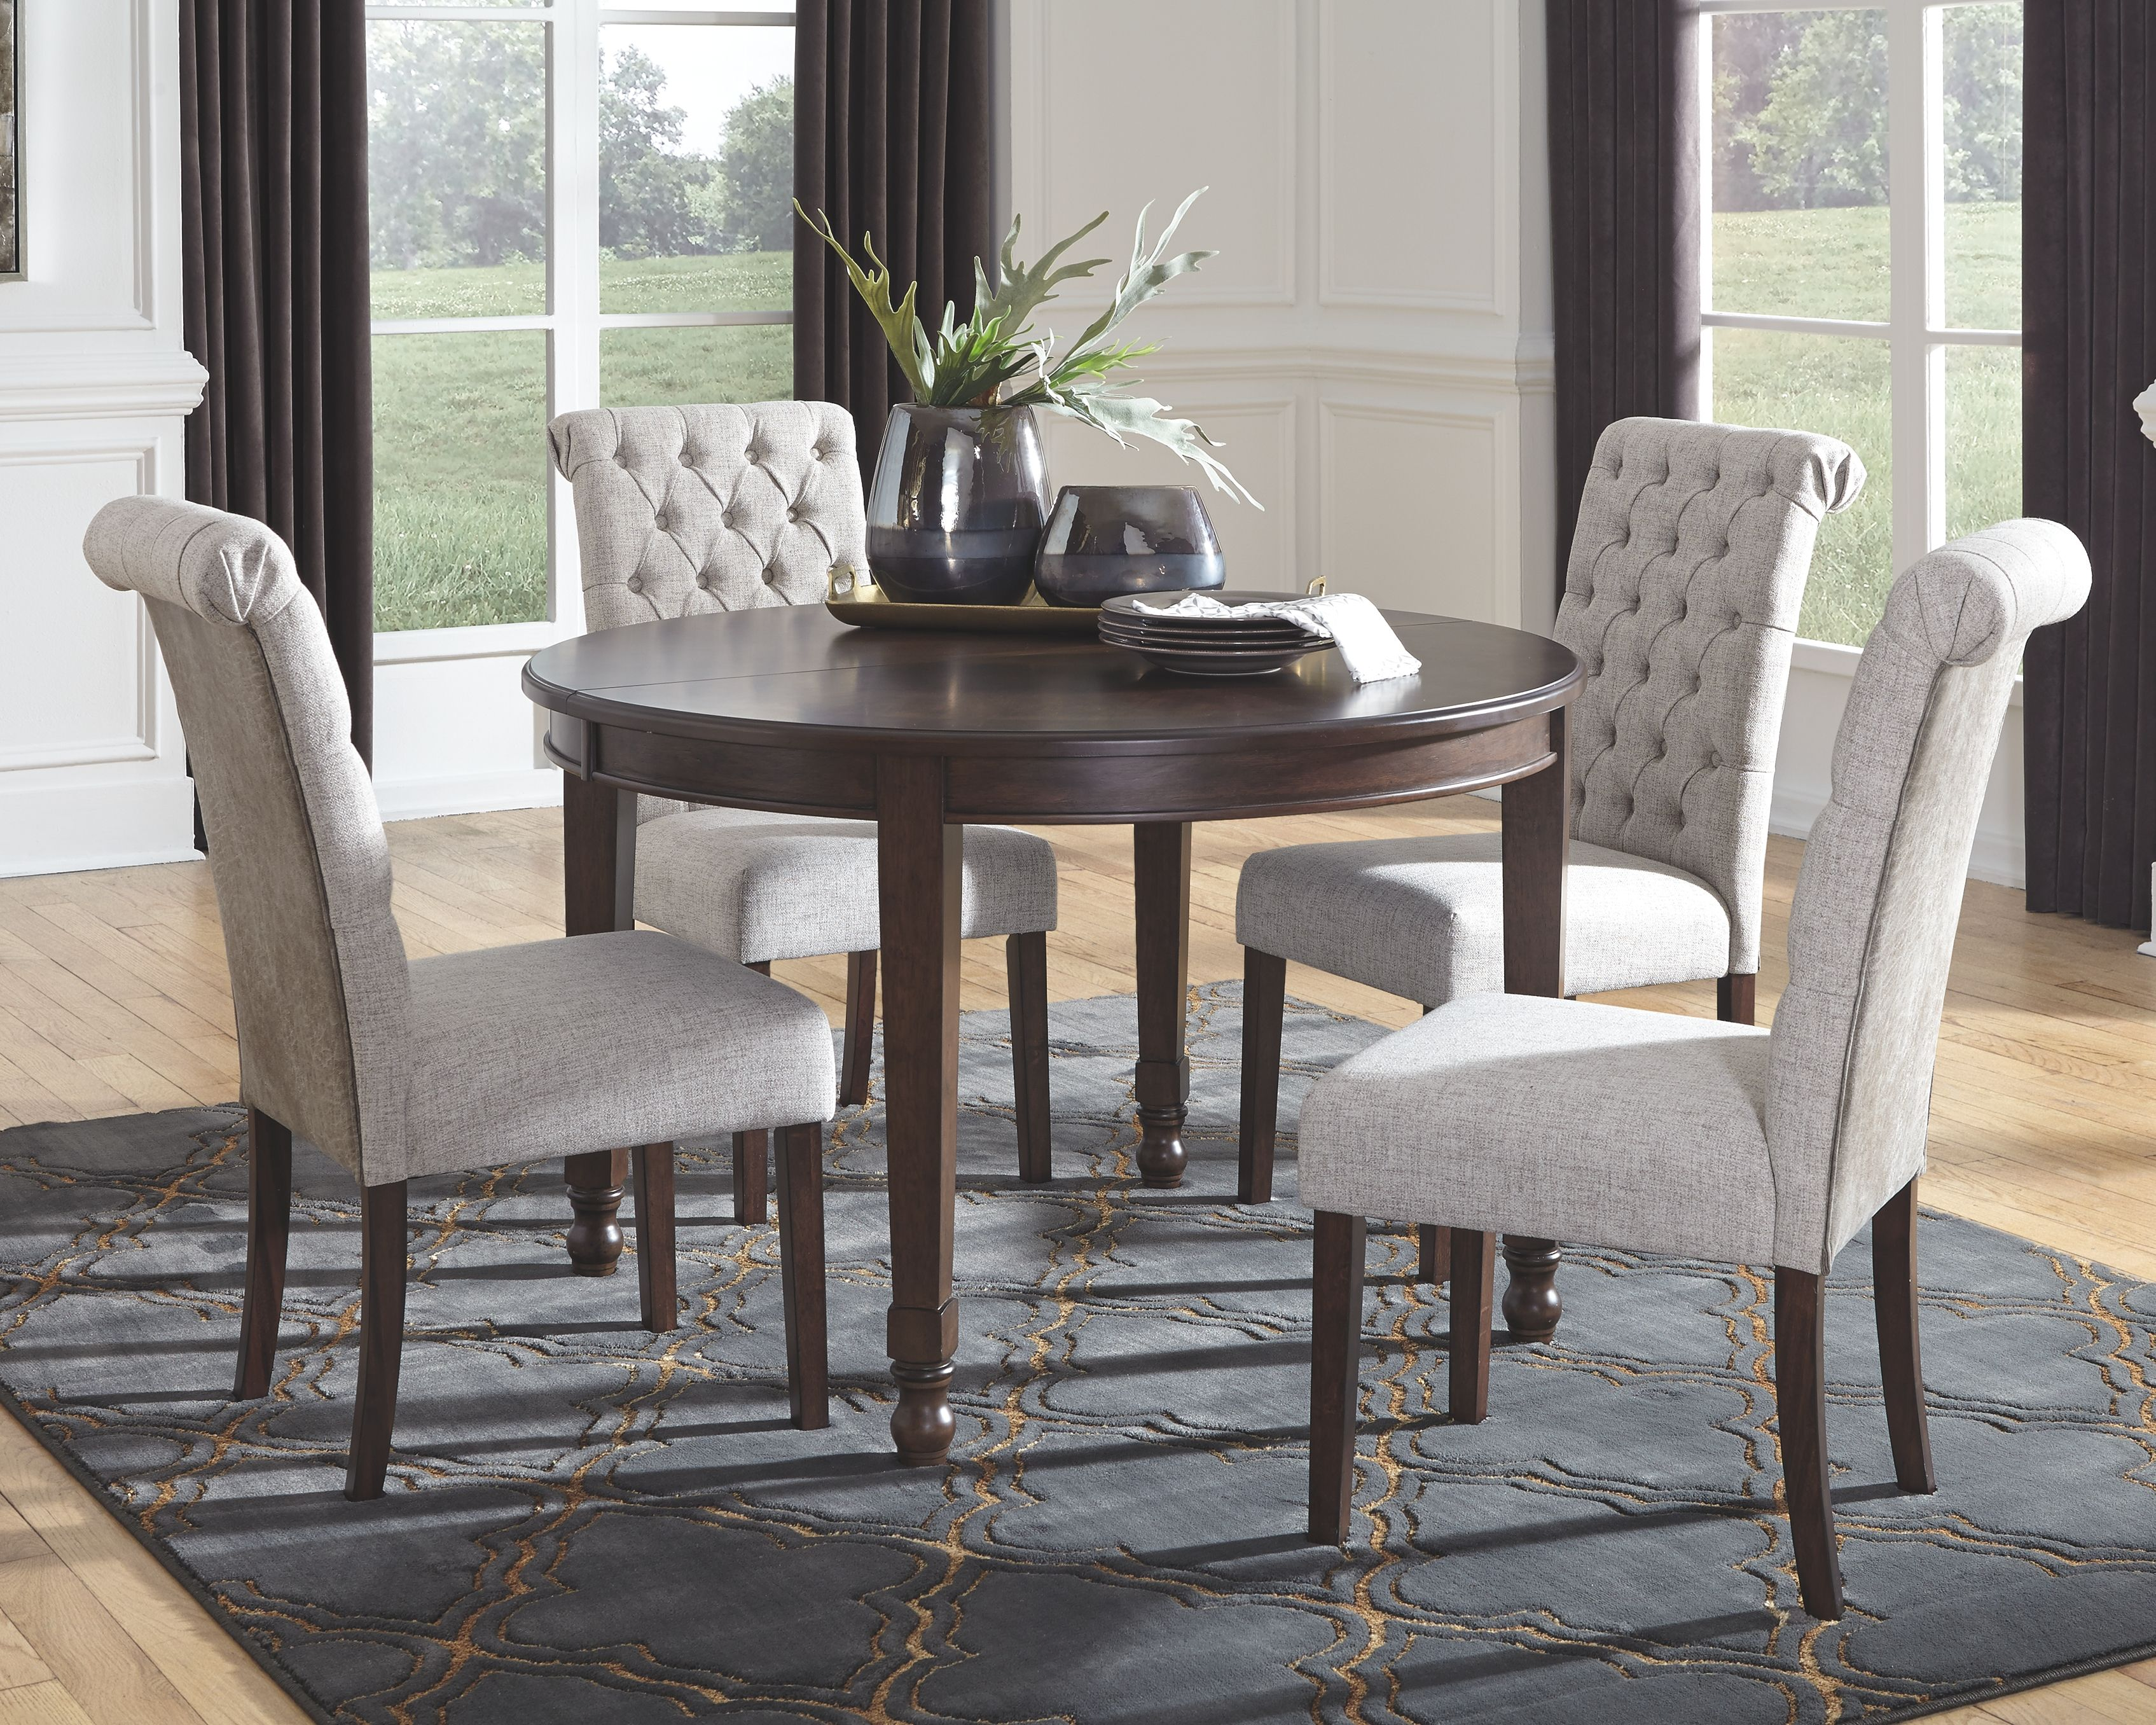 Adinton Dining Extension Table In 2020 Upholstered Side Chair Extension Table Room Extensions